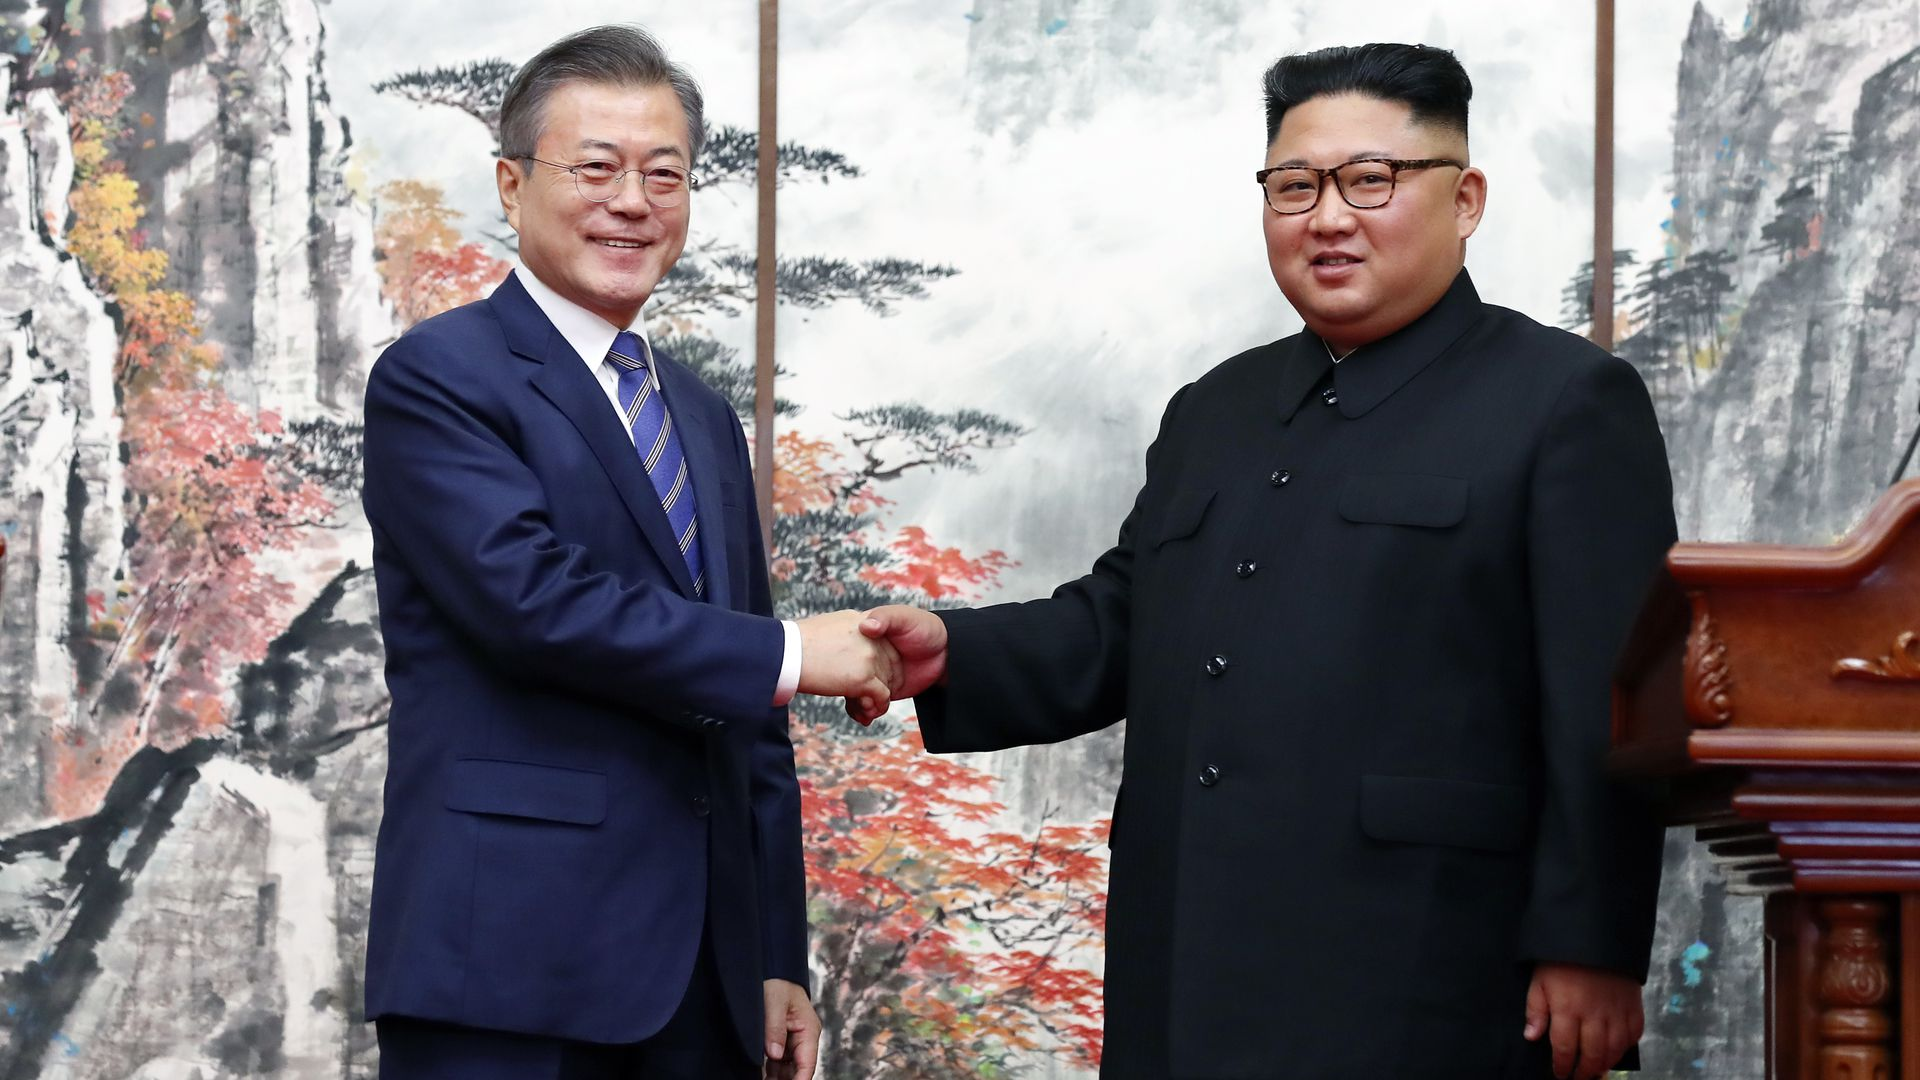 Moon Jae-in and Kim Jong-un shake hands.